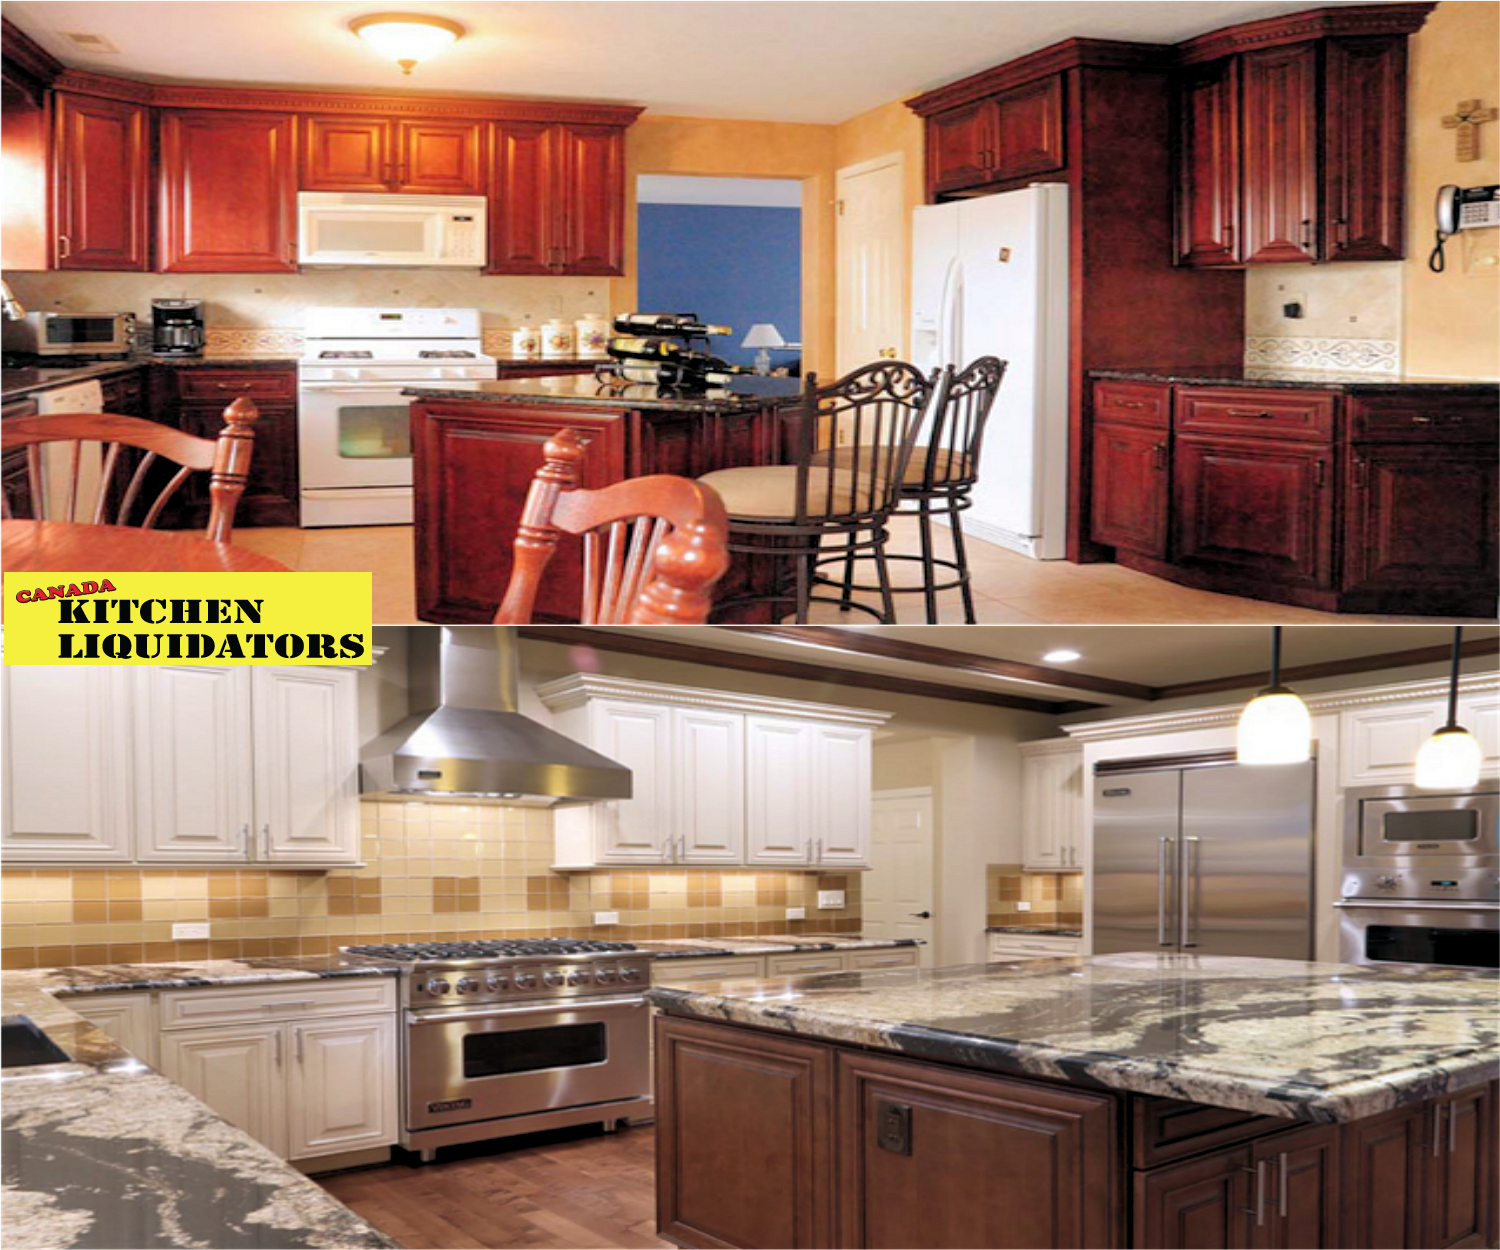 Buy Direct In Canada! At Canada Kitchen Liquidators, Our Custom Kitchen  Cabinets Are Offered